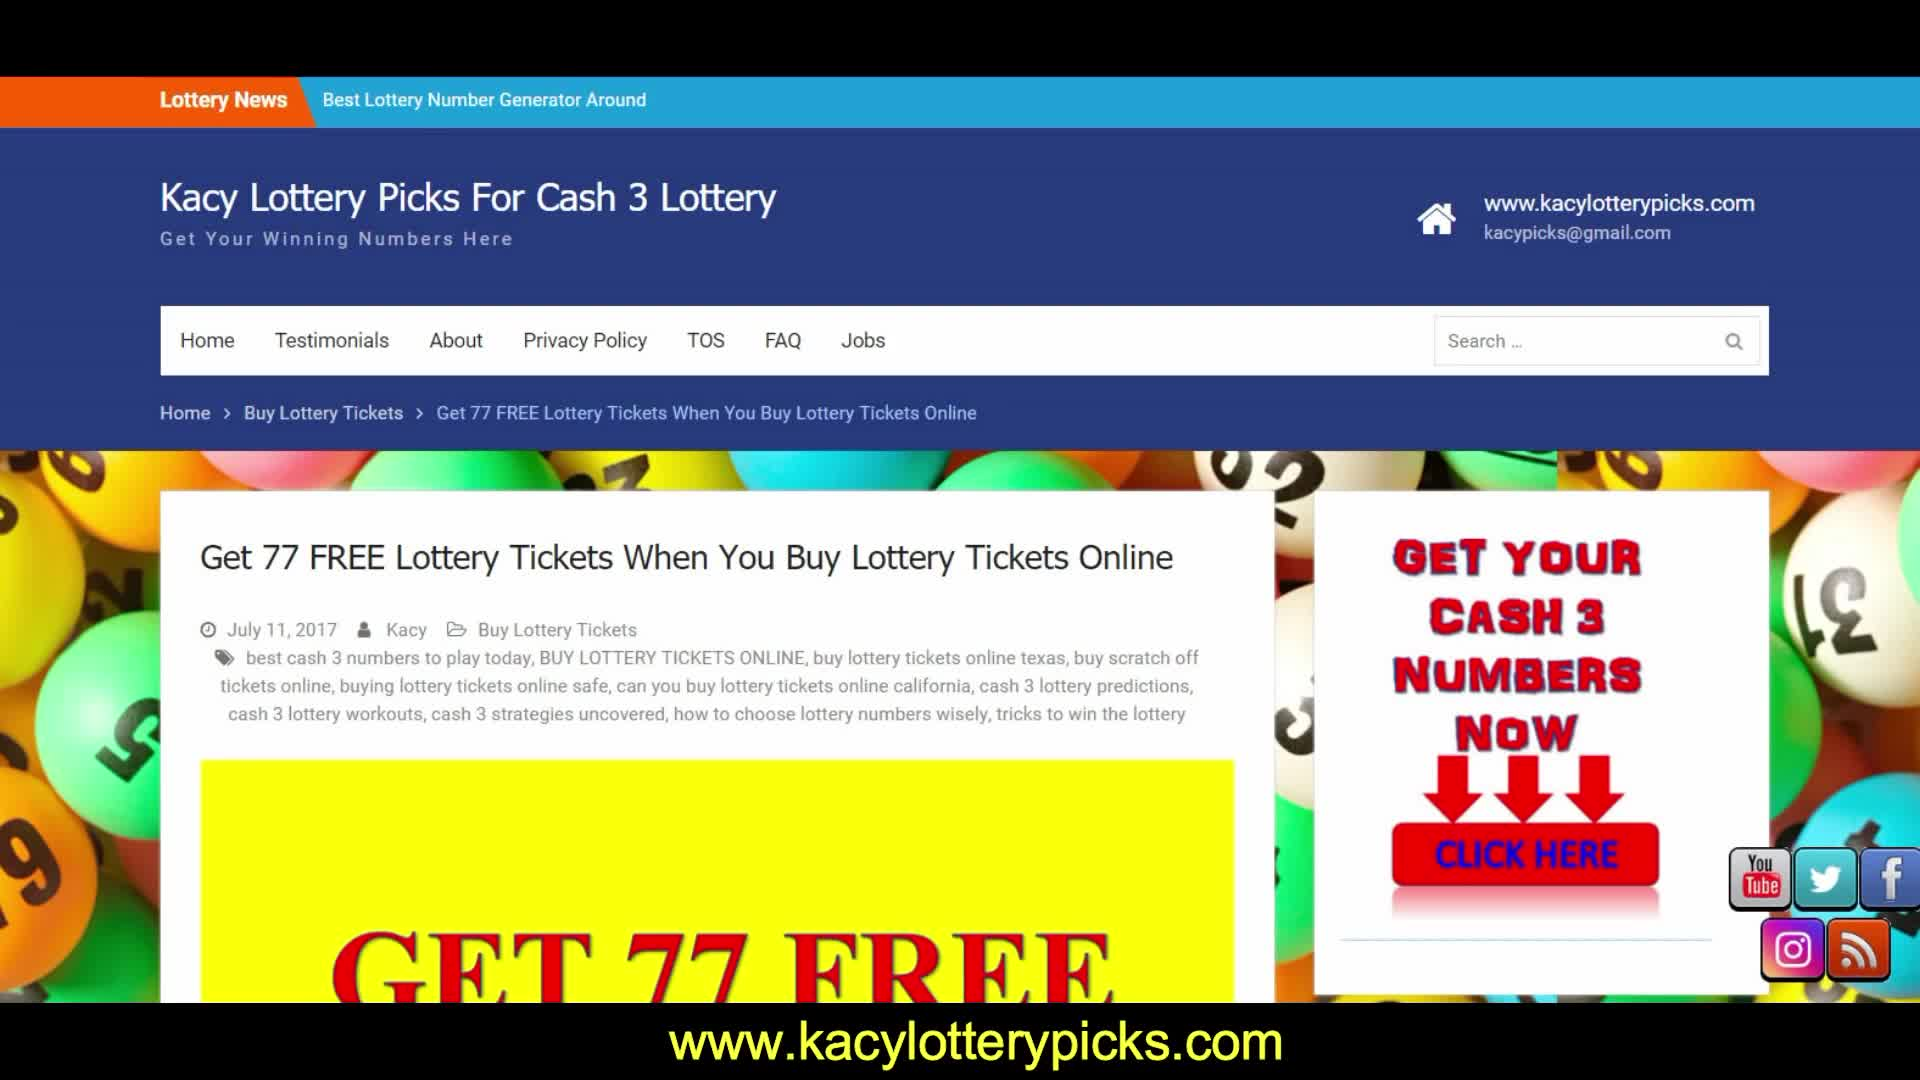 CASH 3 LOTTERY PREDICTIONS FOR SEPTEMBER 2018